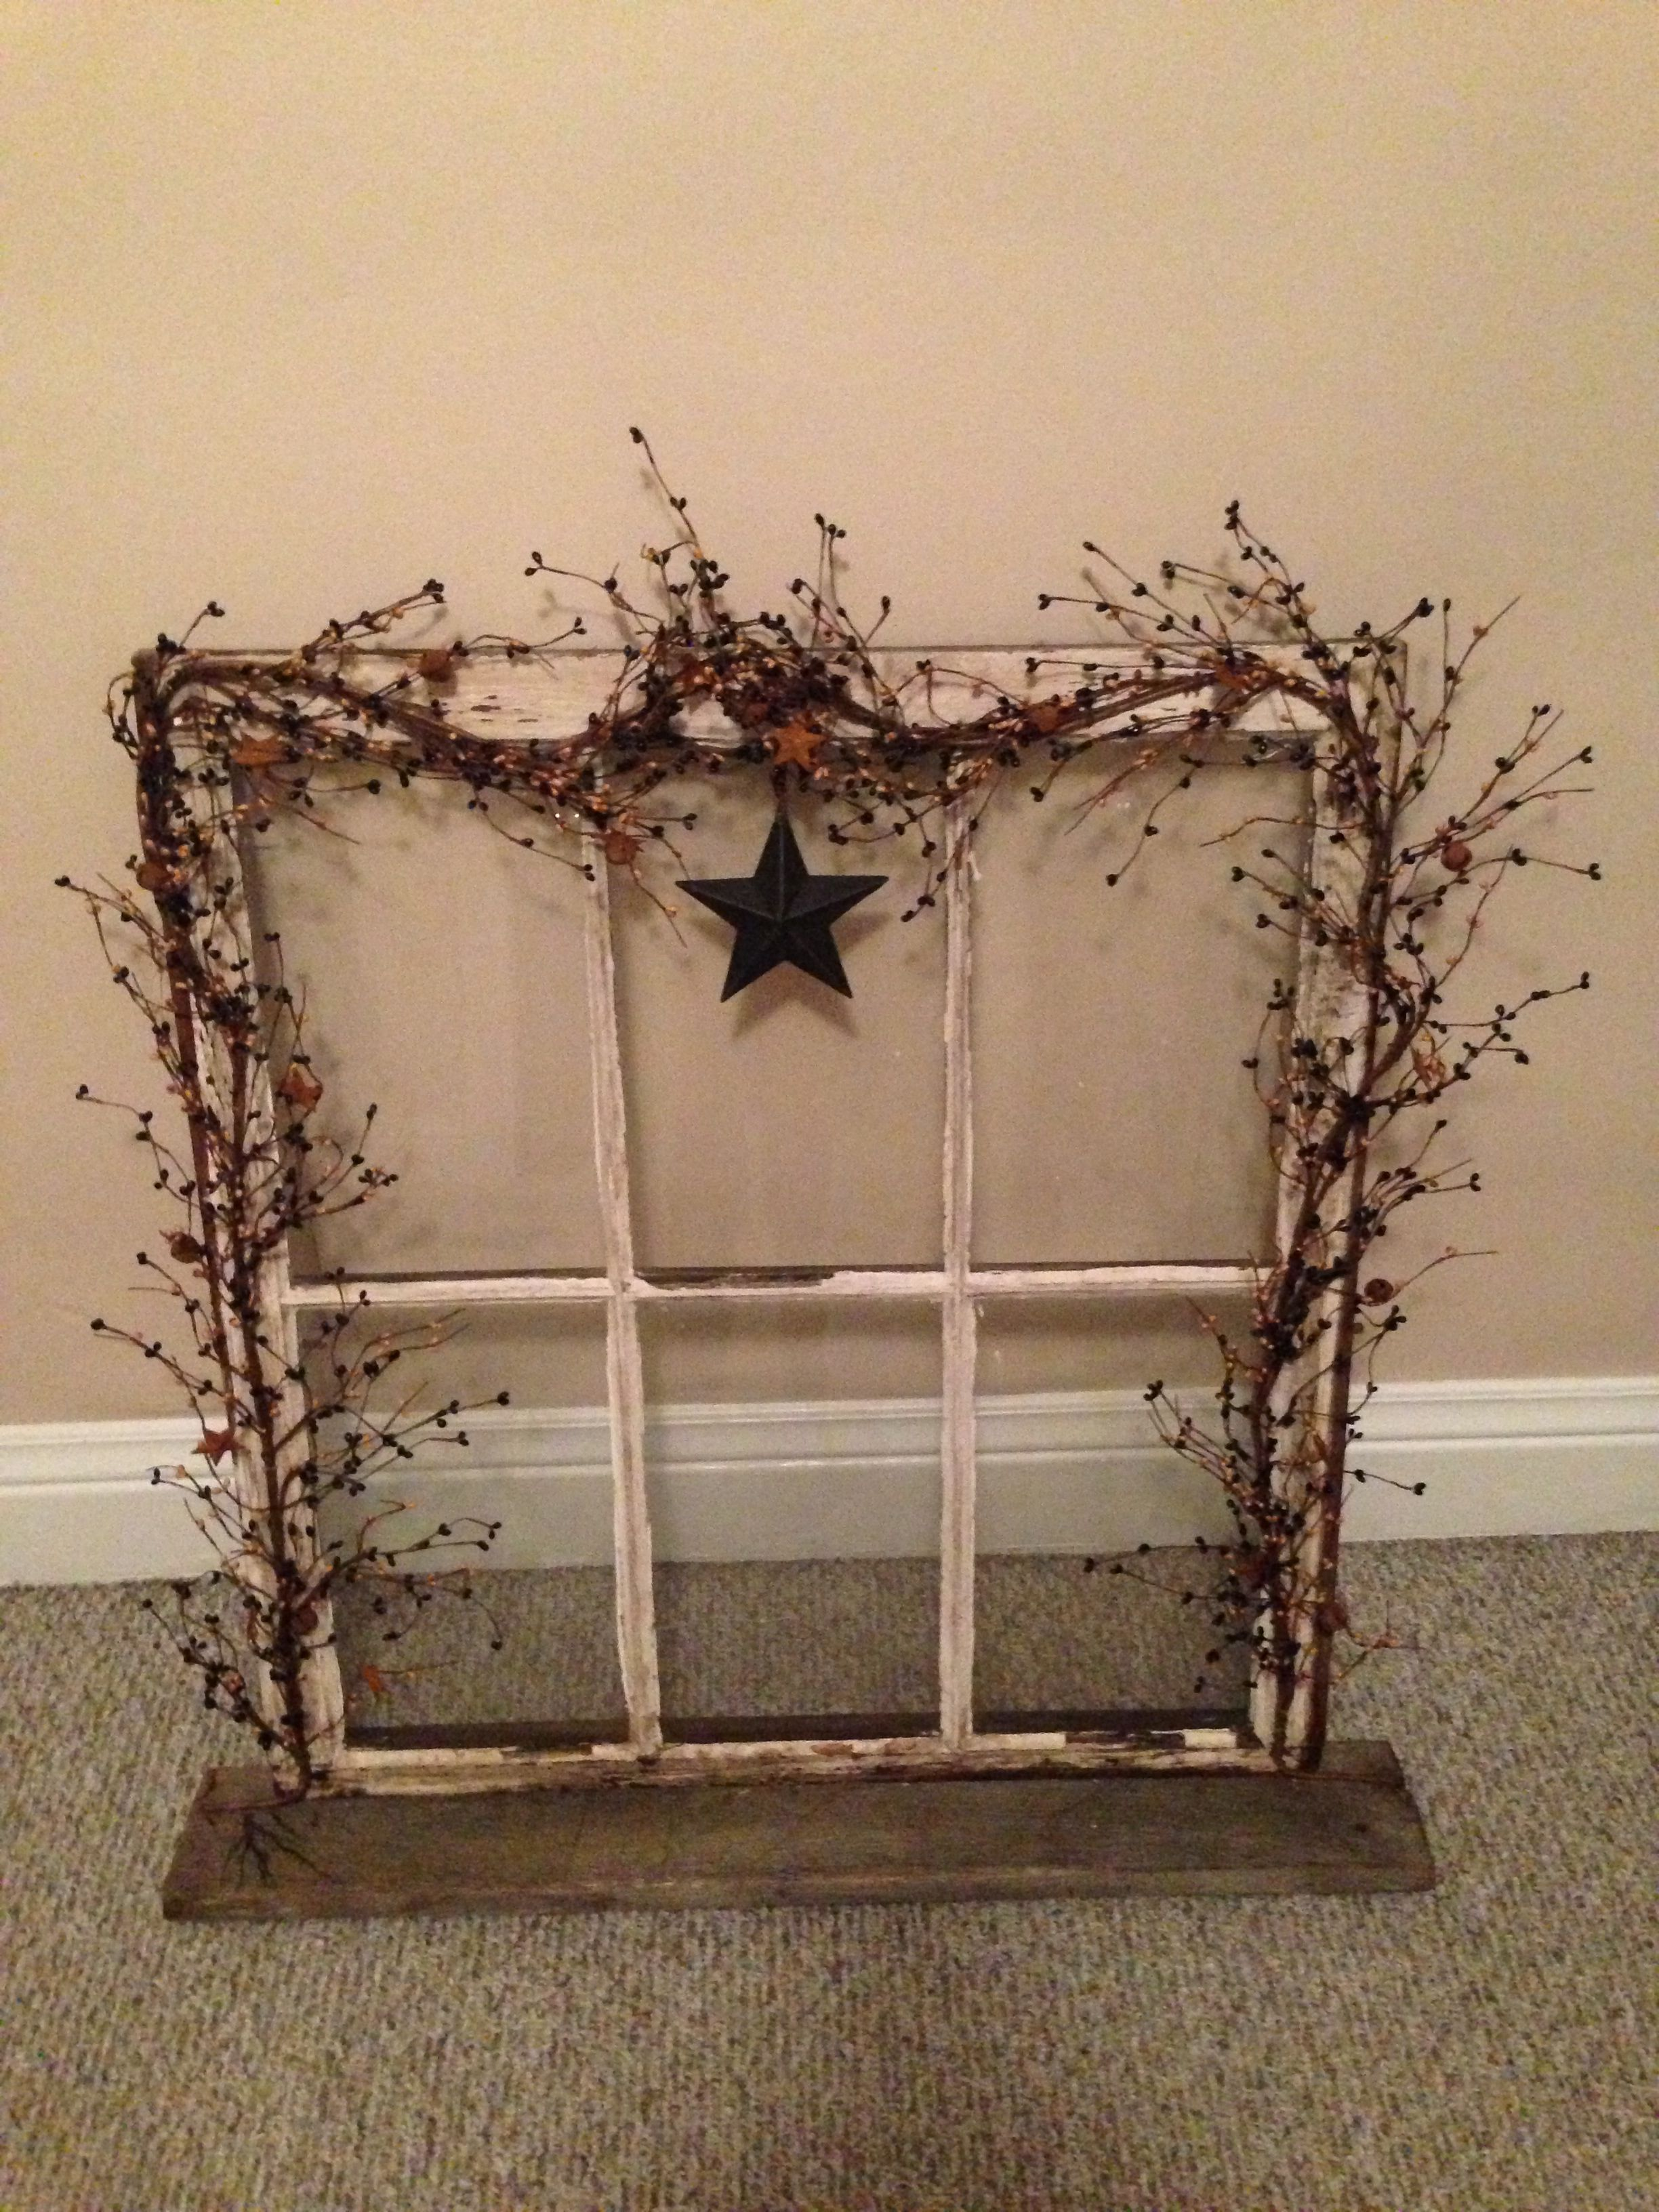 Pin By Dawn Choquette On Diy Primitive Decorating Country Old Window Decor Window Frame Decor